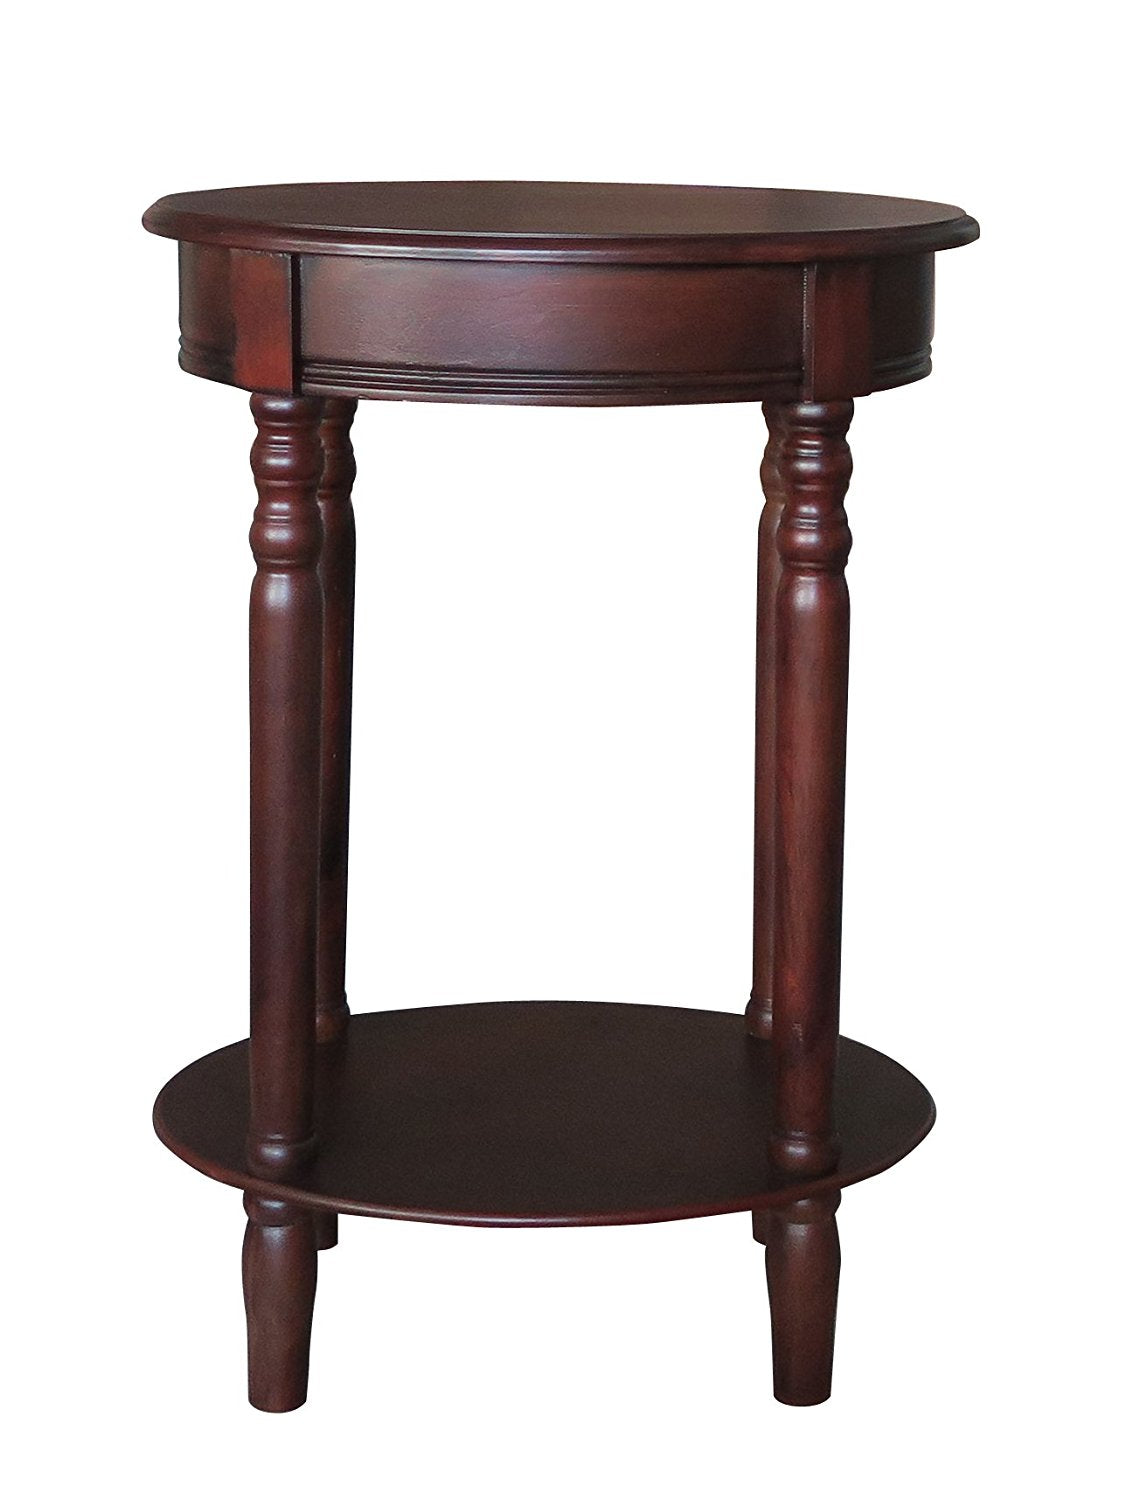 Woodbury Oval Accent Table with Drawer - 6 Finishes